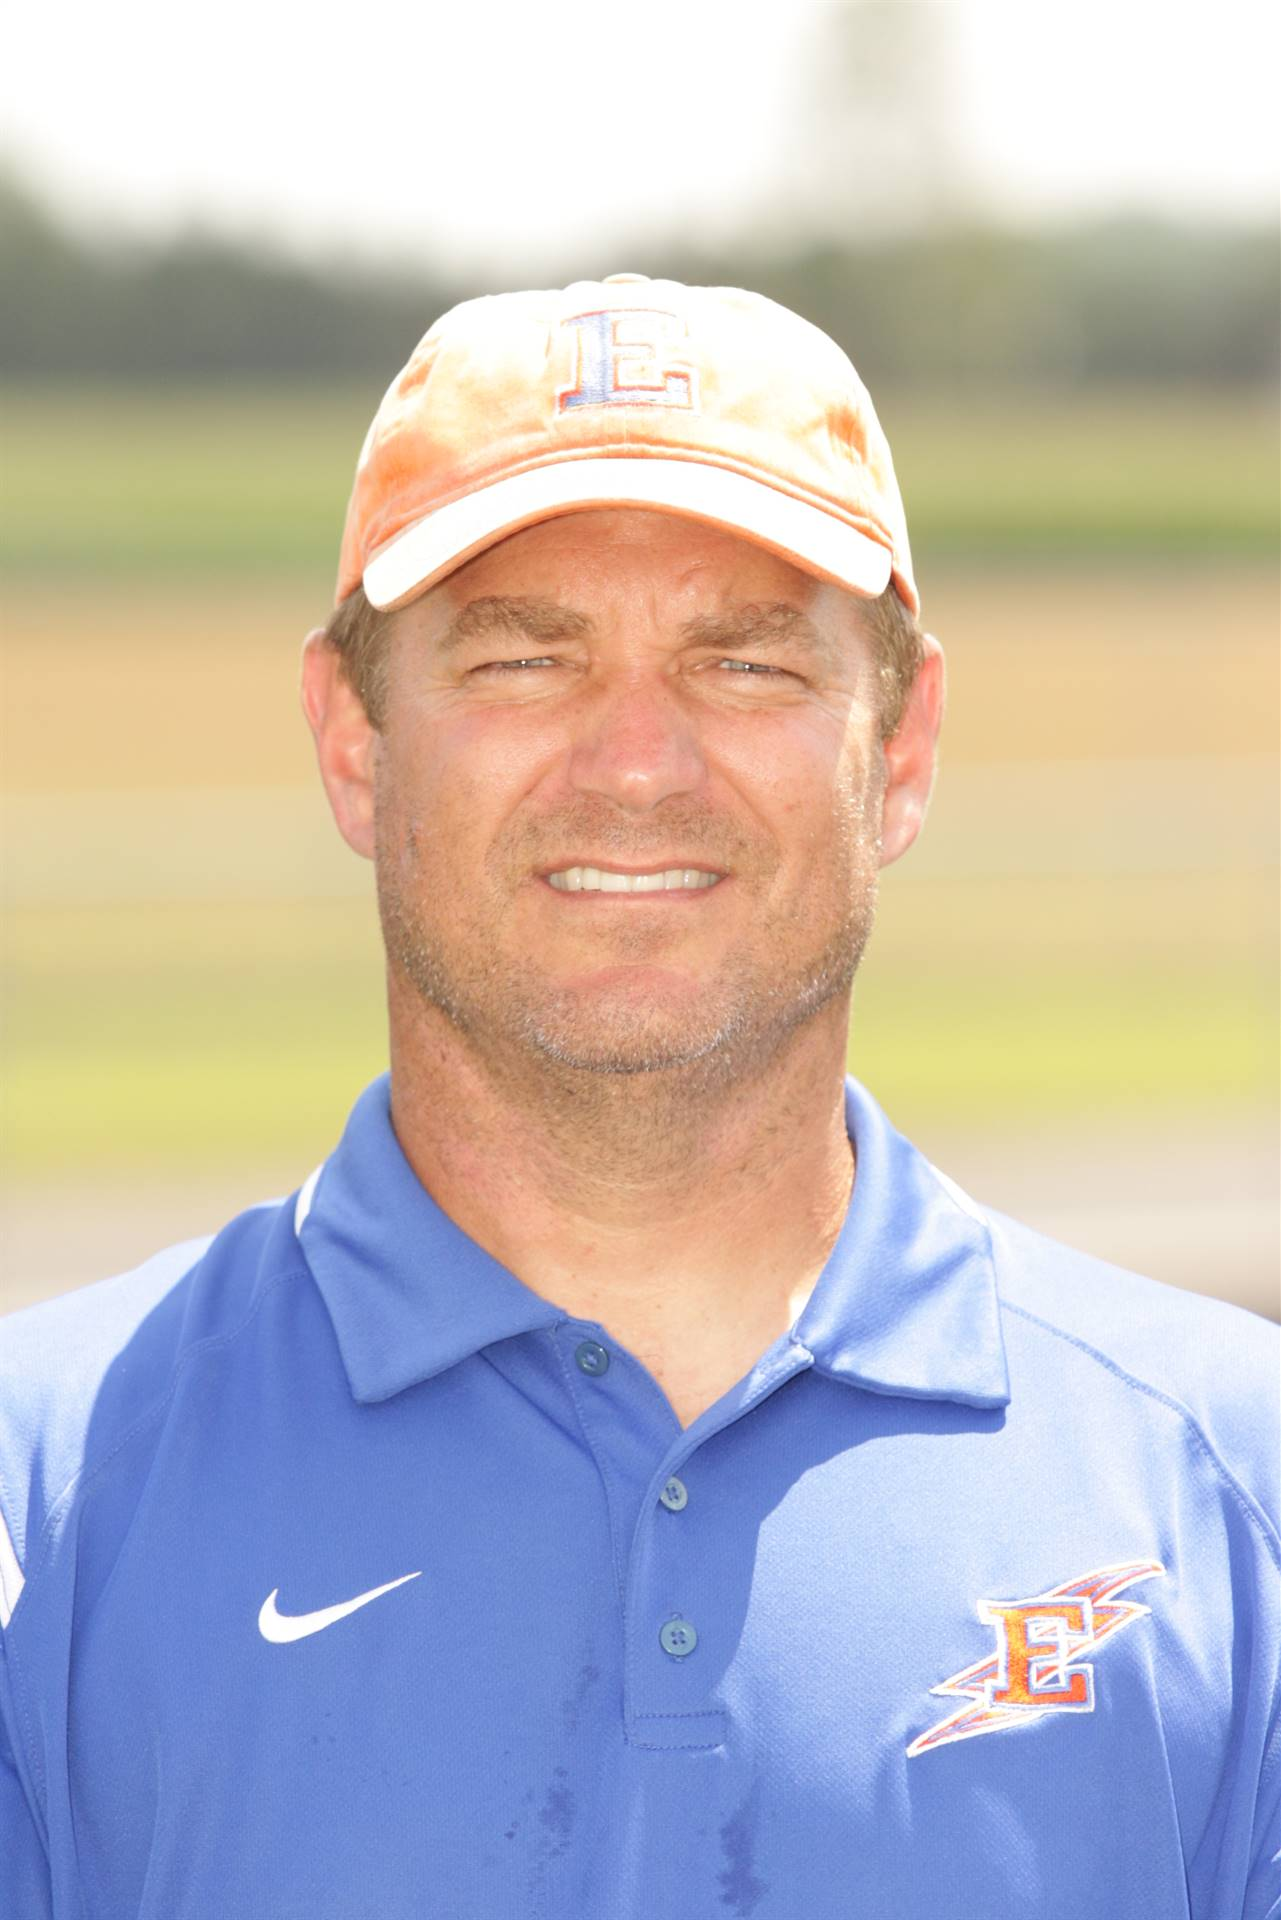 Head Coach - Jim Hall